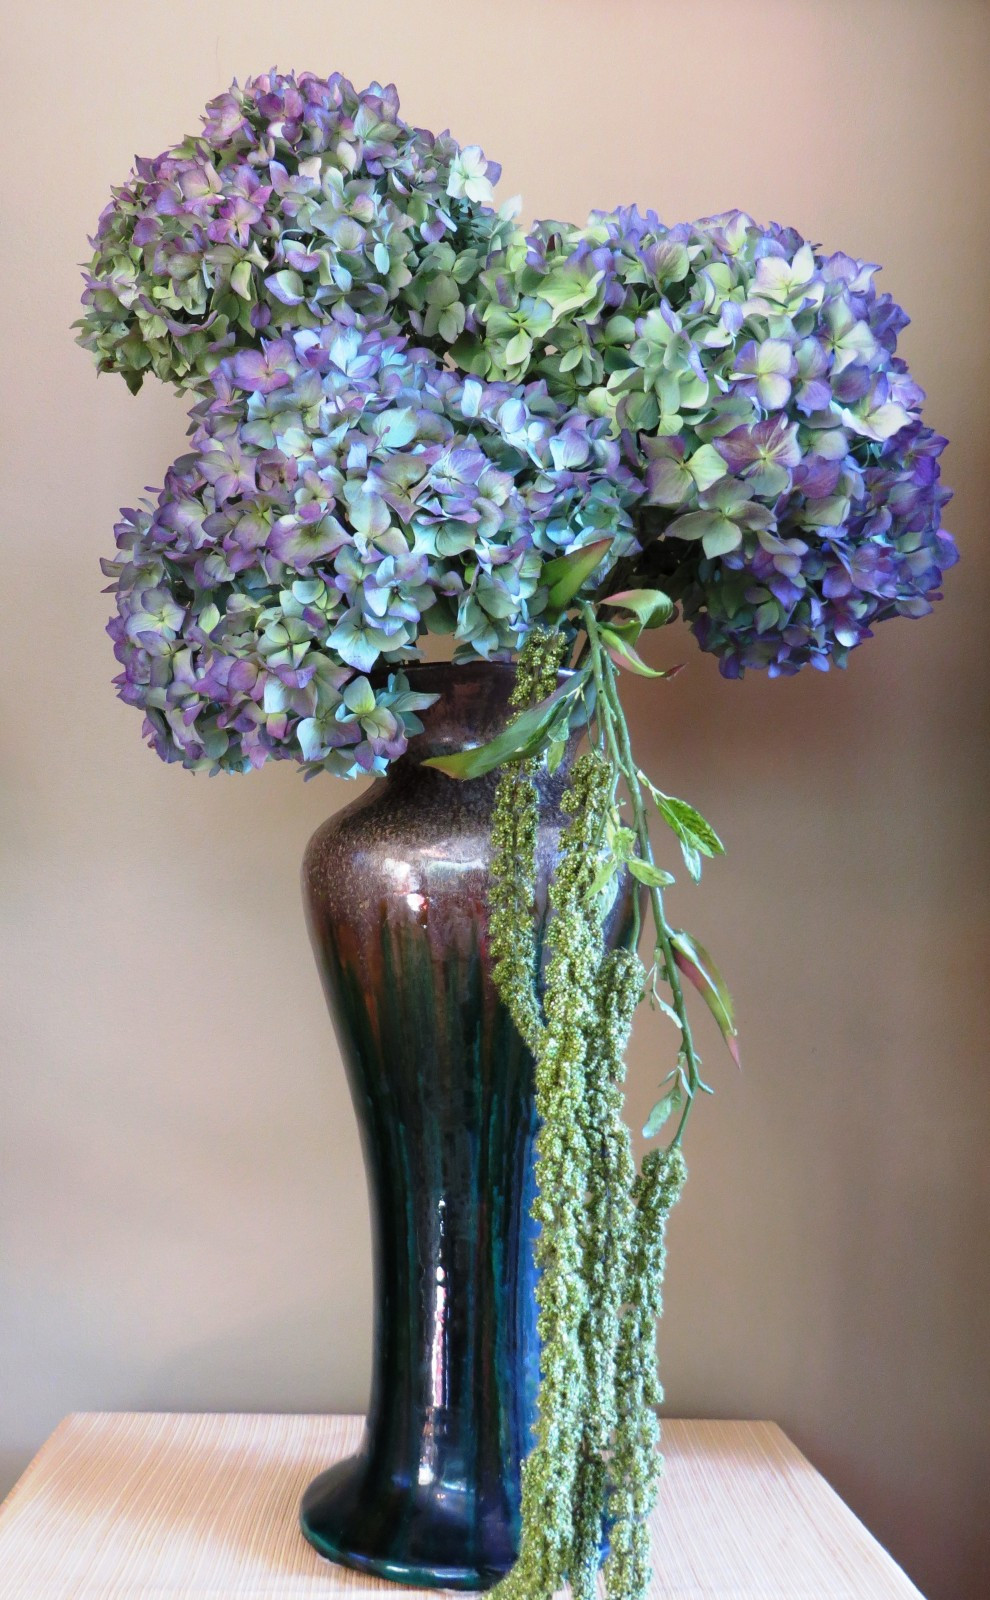 Wide Mouth Vase Of How to Arrange Artificial Flowers In A Large Vase Vase and Cellar with Flower Arranging with Hydrangeas My Sweet Cote